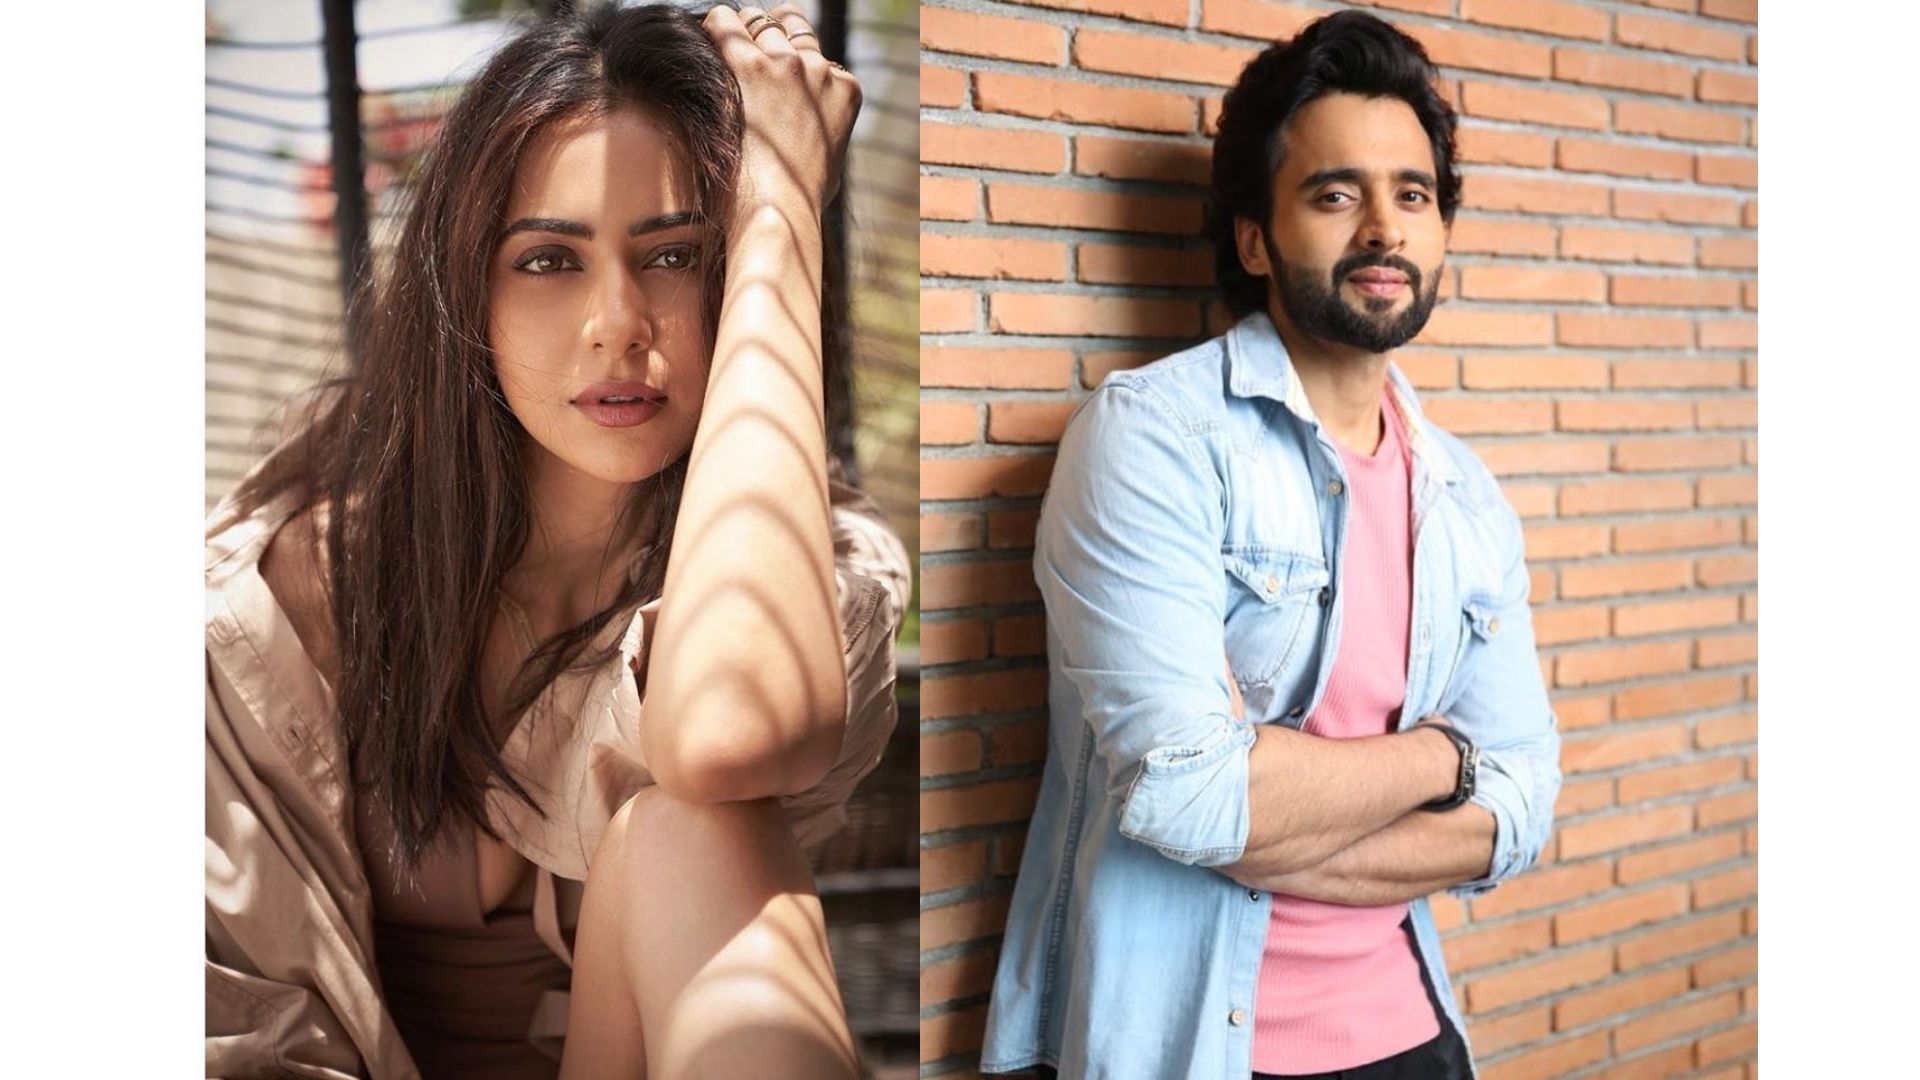 Rakul Preet Singh And Jackky Bhagnani Make Their Relationship Insta Official On The Actress' Birthday With A Mushy Post